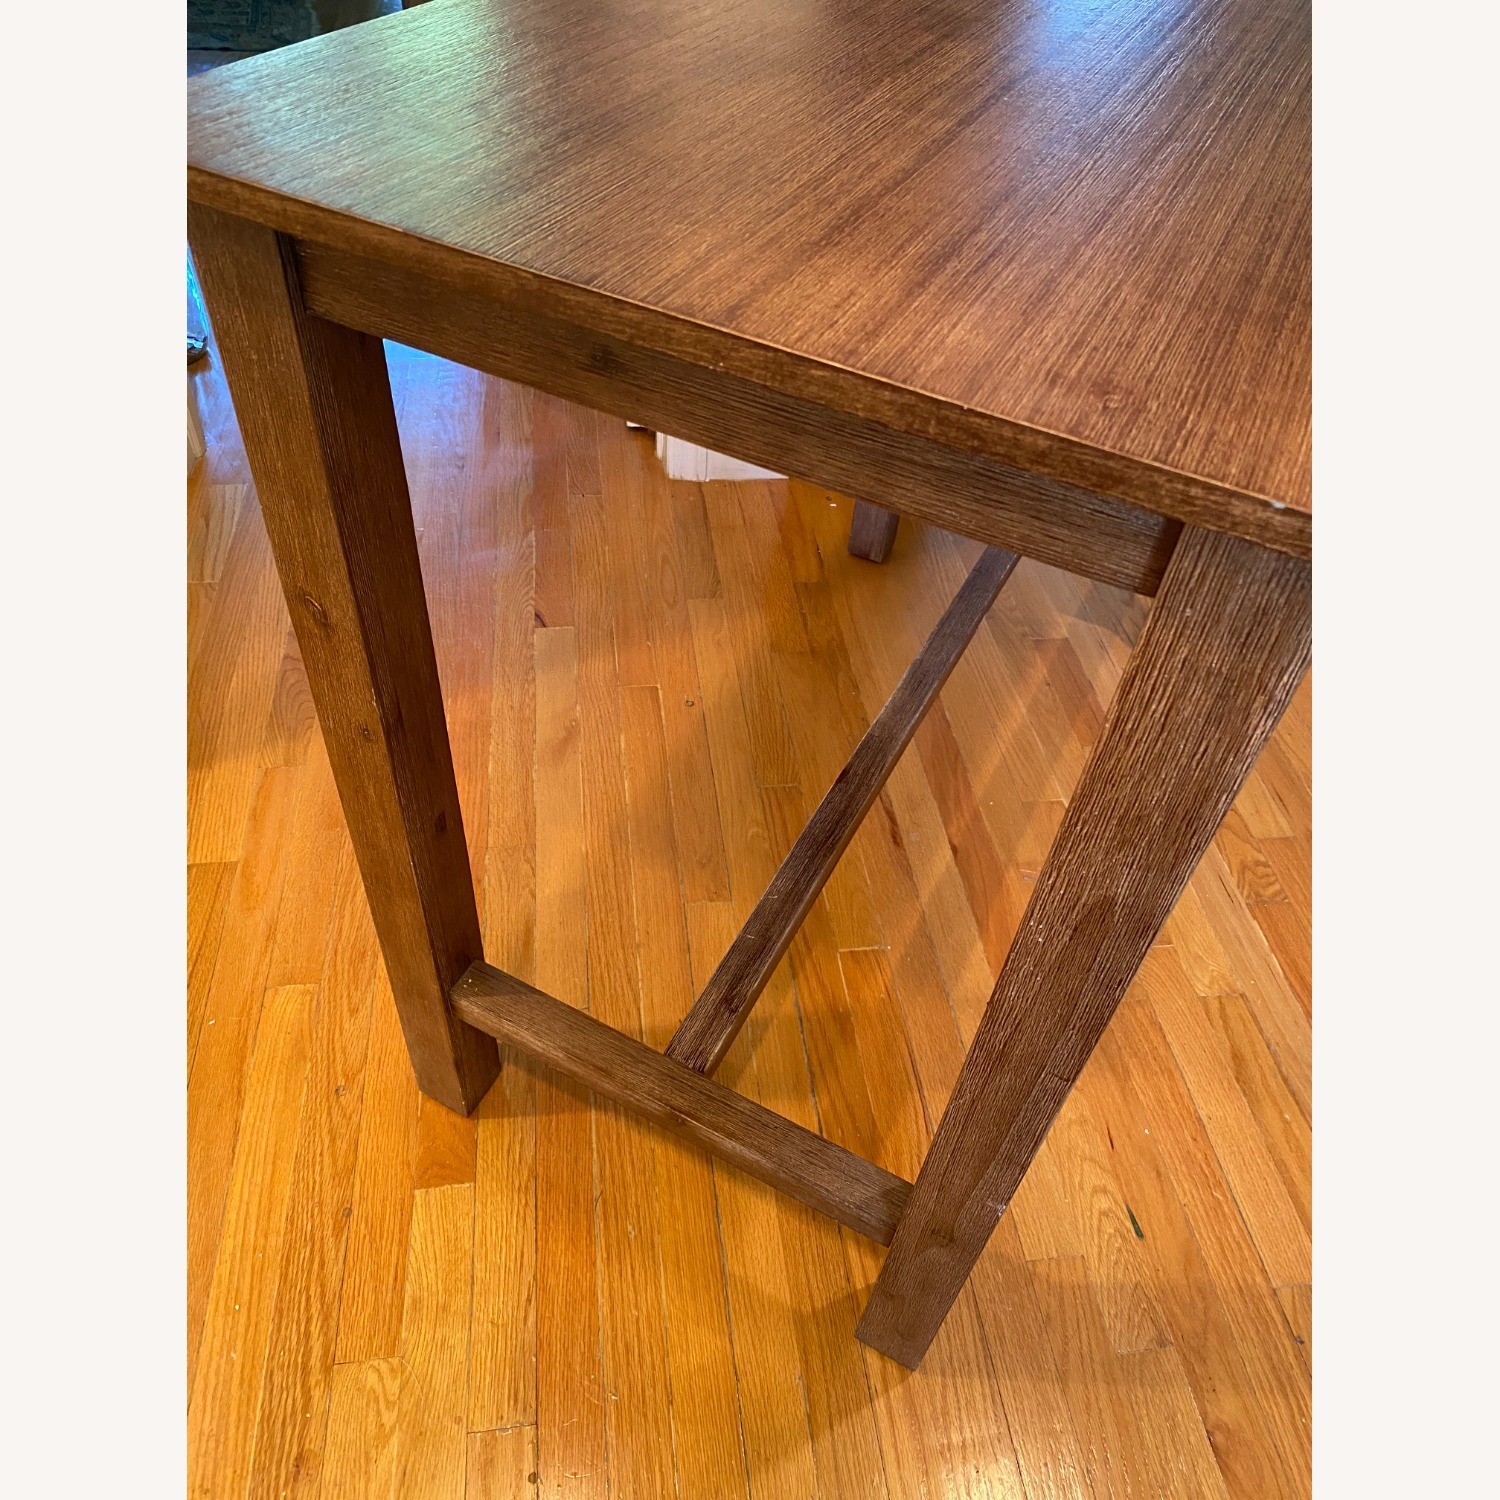 Wayfair Counter Height Rubberwood Solid Wood Dining Table - image-3